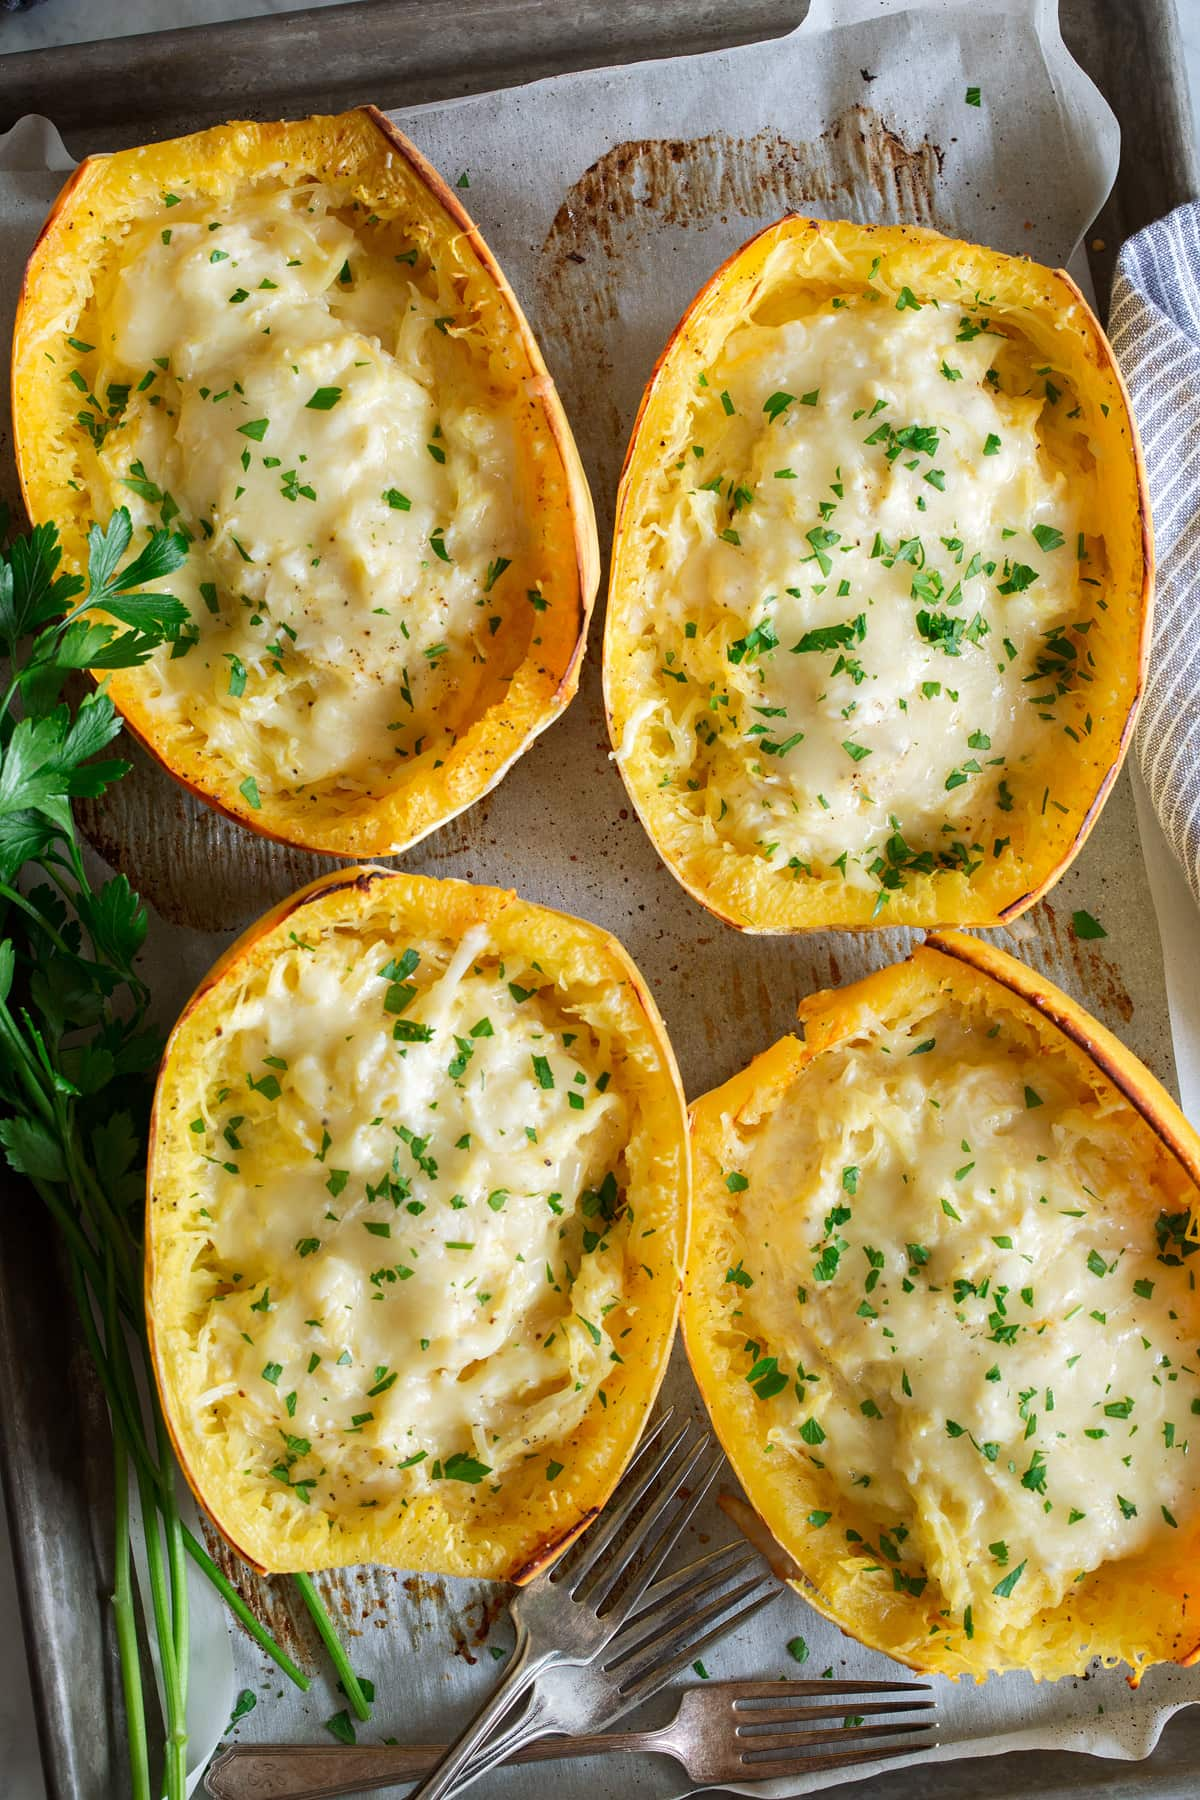 Overhead image of four spaghetti squash filled with cheese, they are resting on a parchment paper lined baking sheet.